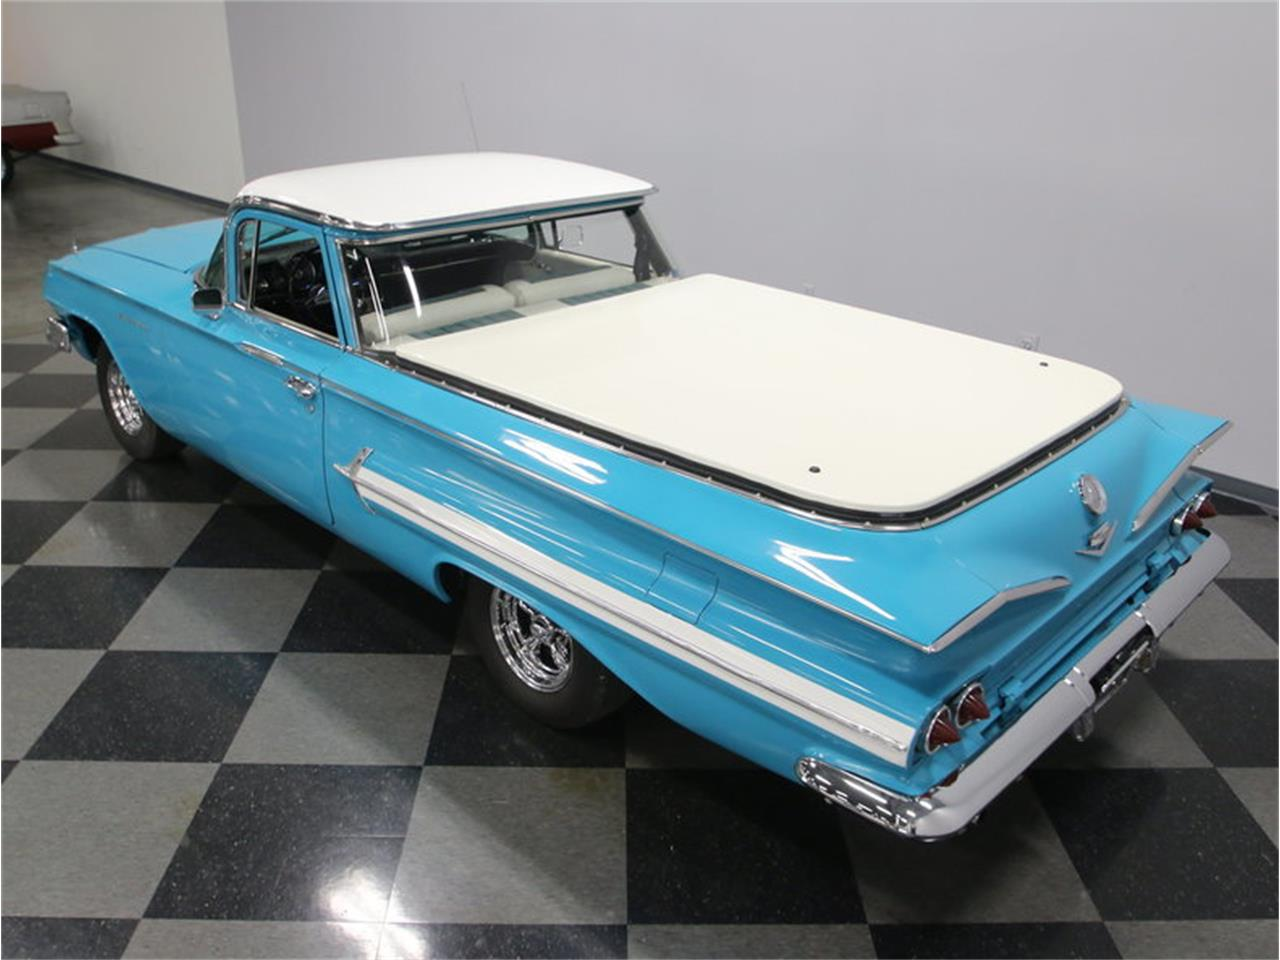 Large Picture of 1960 Chevrolet El Camino located in Tennessee - $39,995.00 Offered by Streetside Classics - Nashville - L6AL